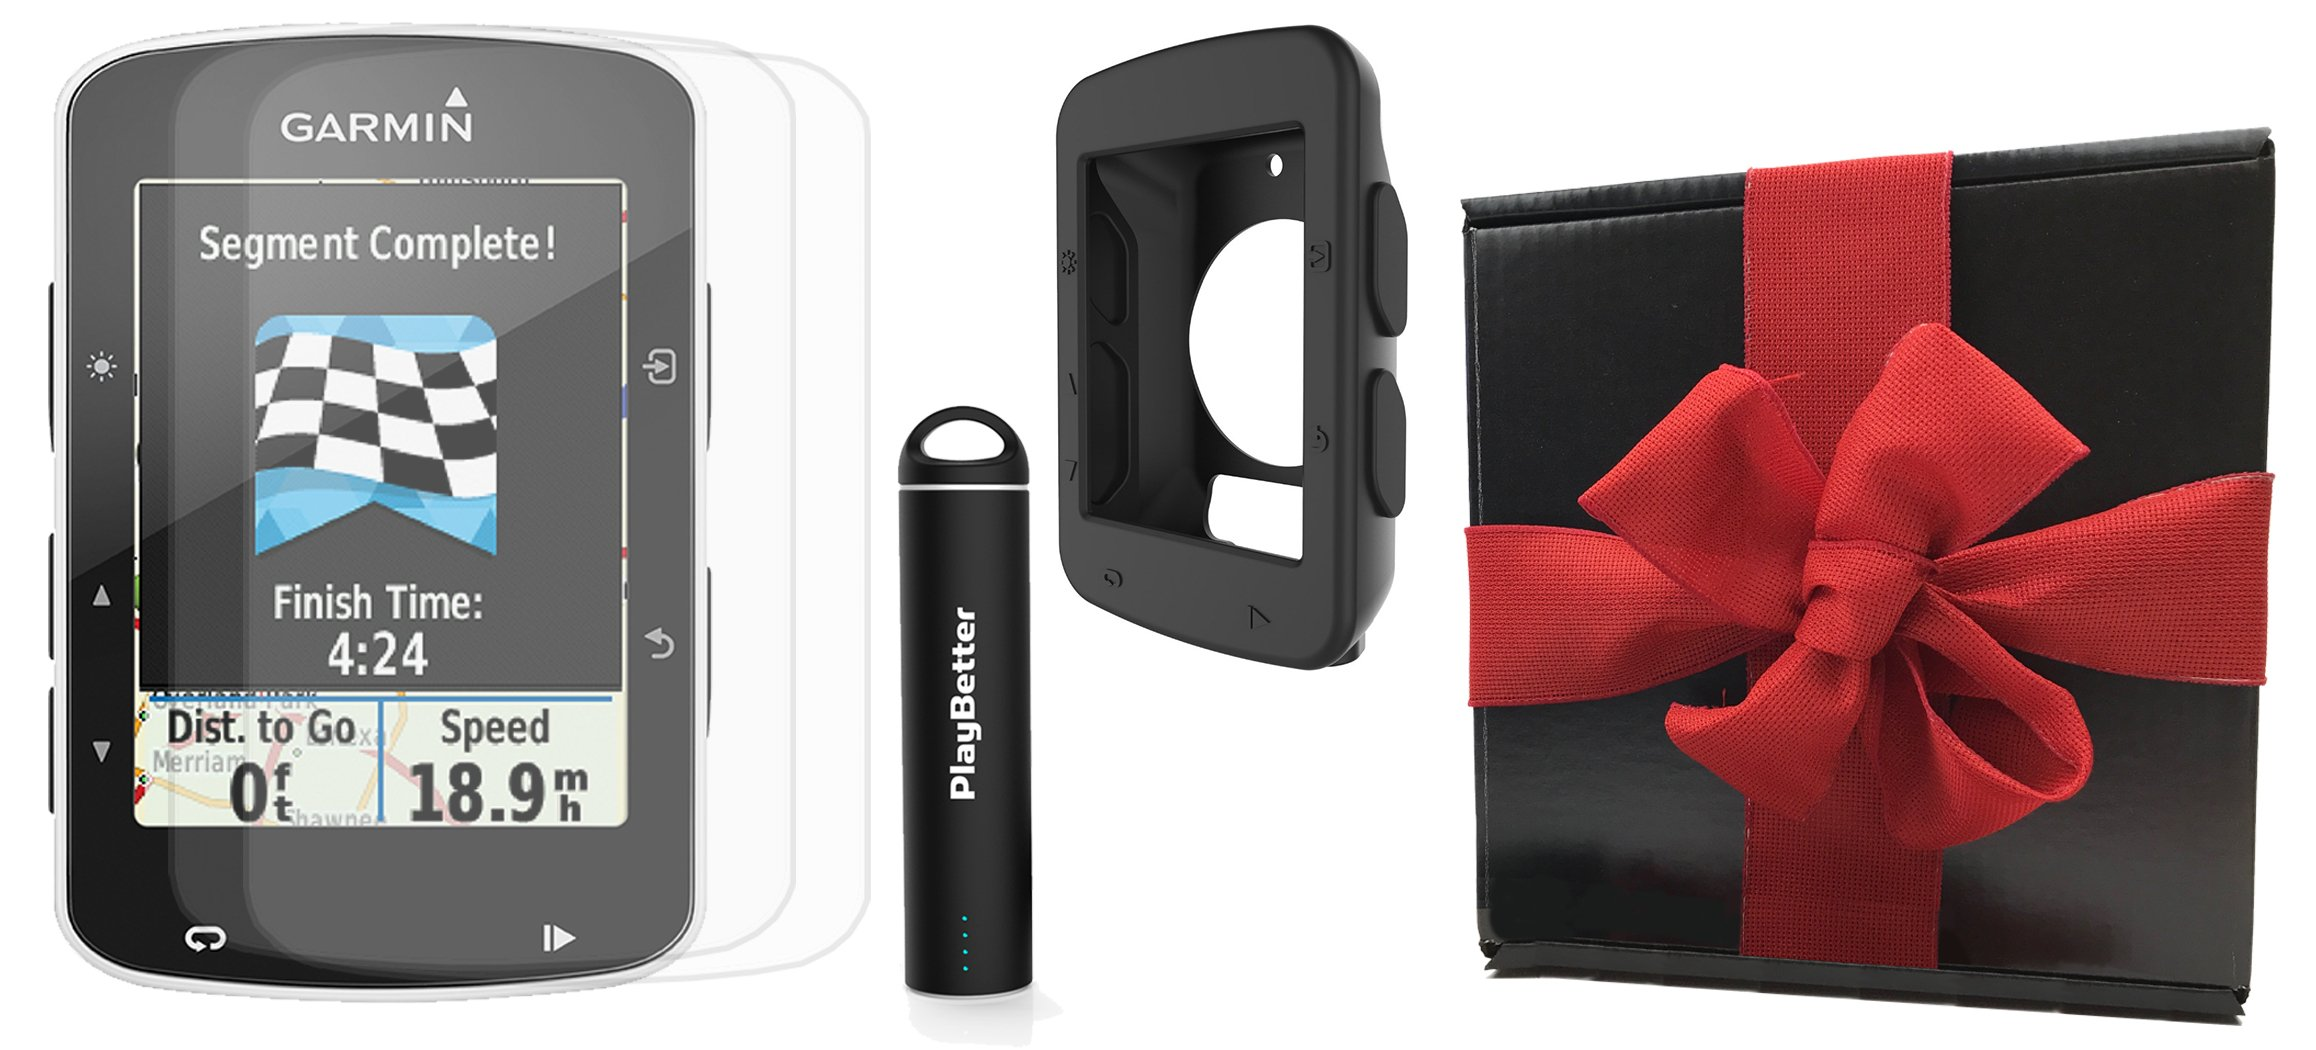 Garmin Edge 520 Gift Box Bundle   with PlayBetter Silicone Case, Portable Charger & HD Screen Protectors   Bike Mounts   GPS Bike Computer   Gift Box (Black, GPS Only)